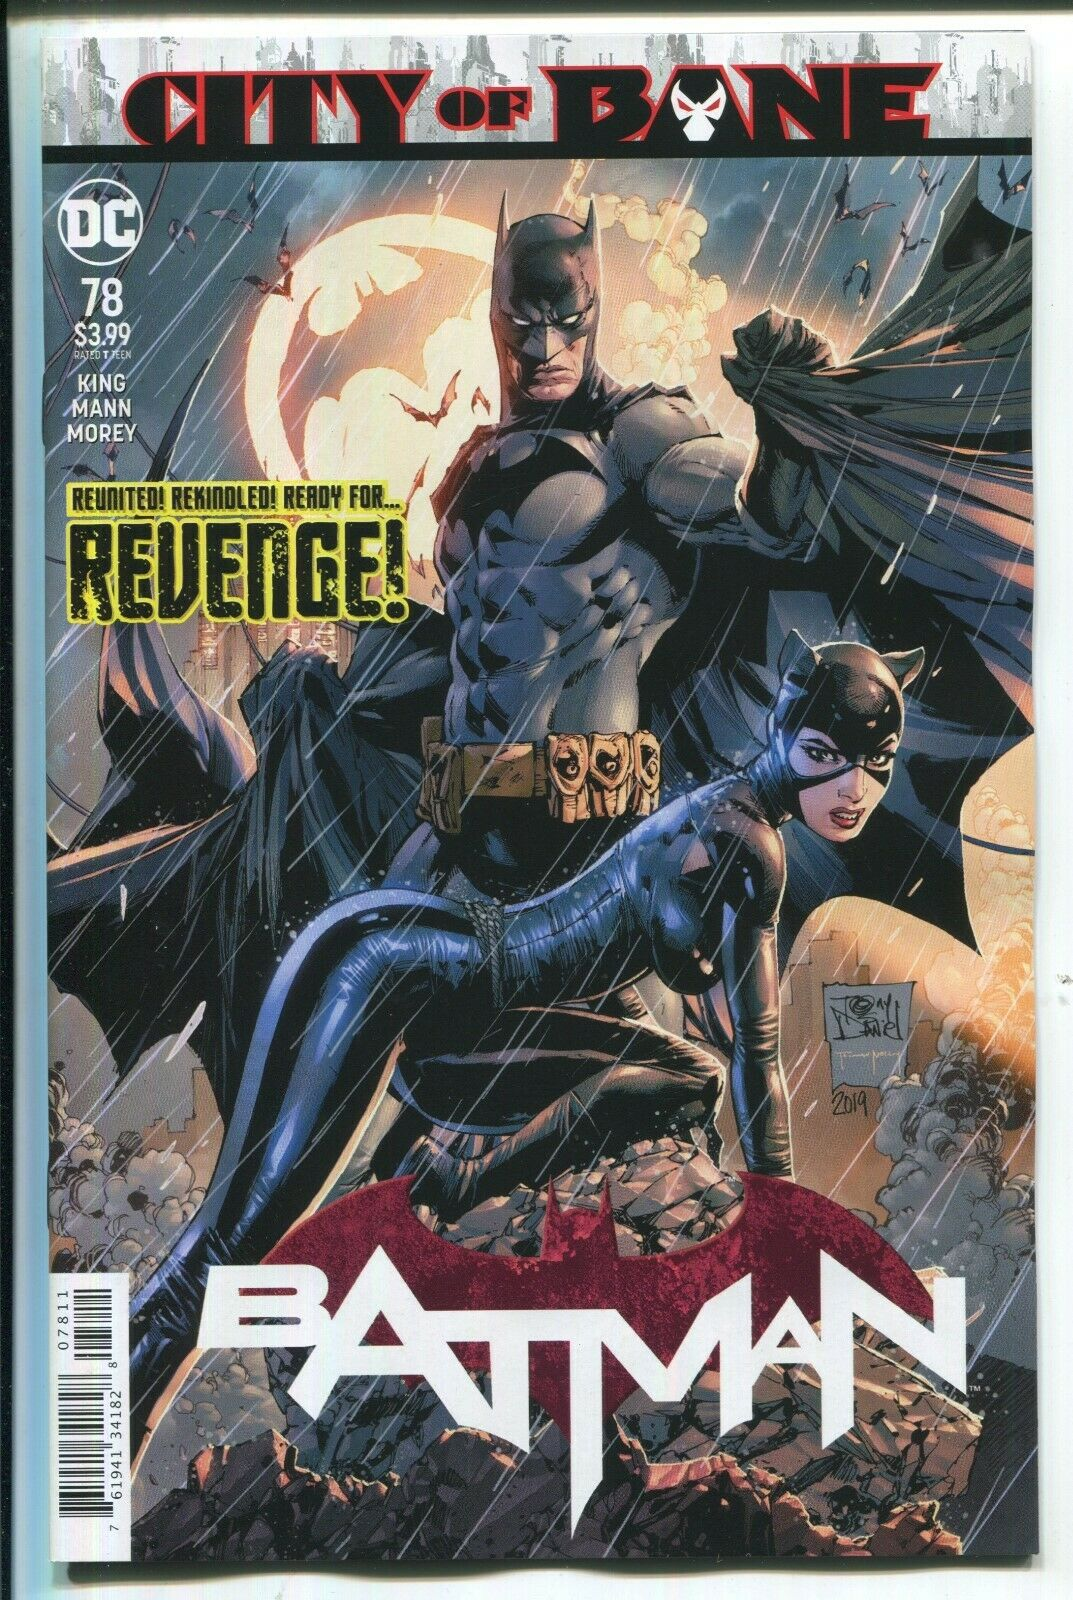 Batarang Therapy – Spoilers For Batman #77 and Event Leviathan #4